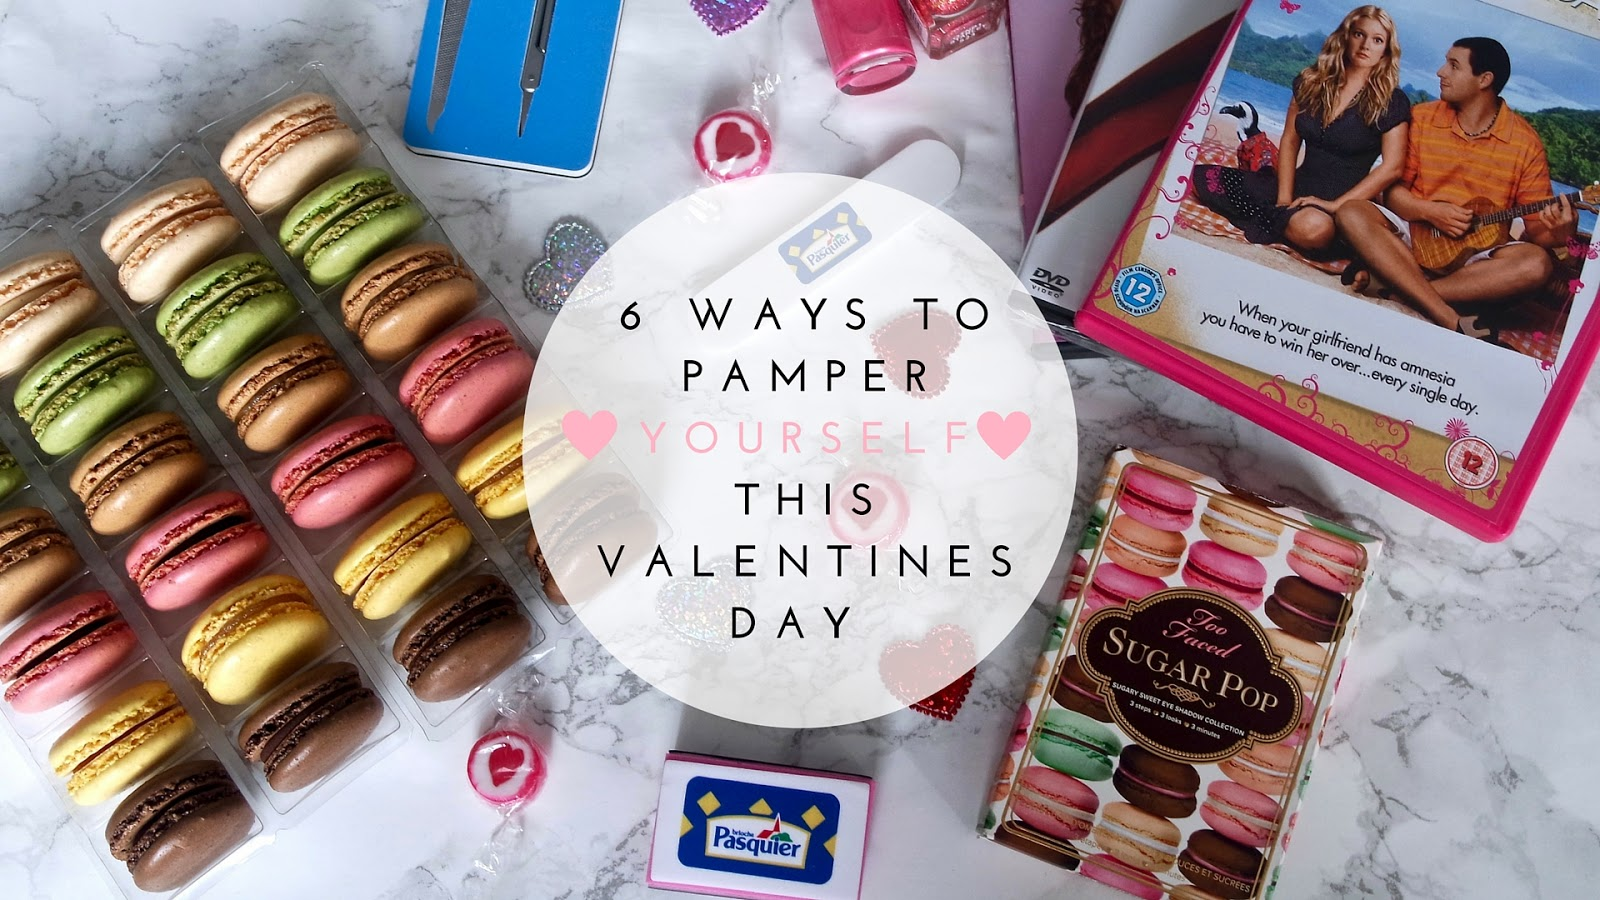 6 Ways To Pamper Yourself This Valentines Day